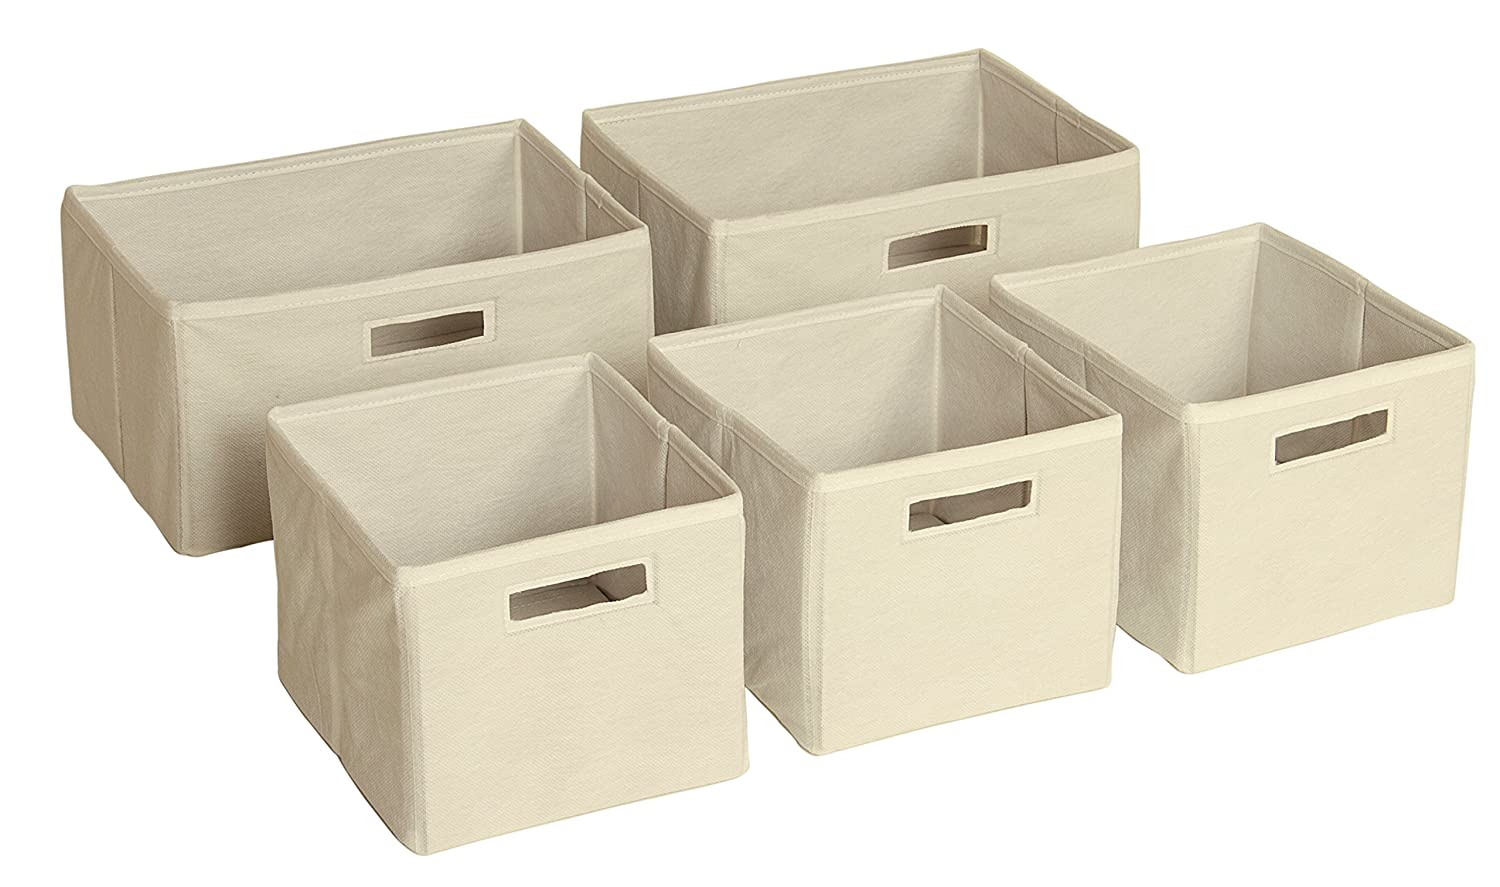 Amazon.com Guidecraft Set of 5 Storage Bin - Cubes Kidu0027s Toy Organizer Tan Baby  sc 1 st  Amazon.com & Amazon.com: Guidecraft Set of 5 Storage Bin - Cubes Kidu0027s Toy ...